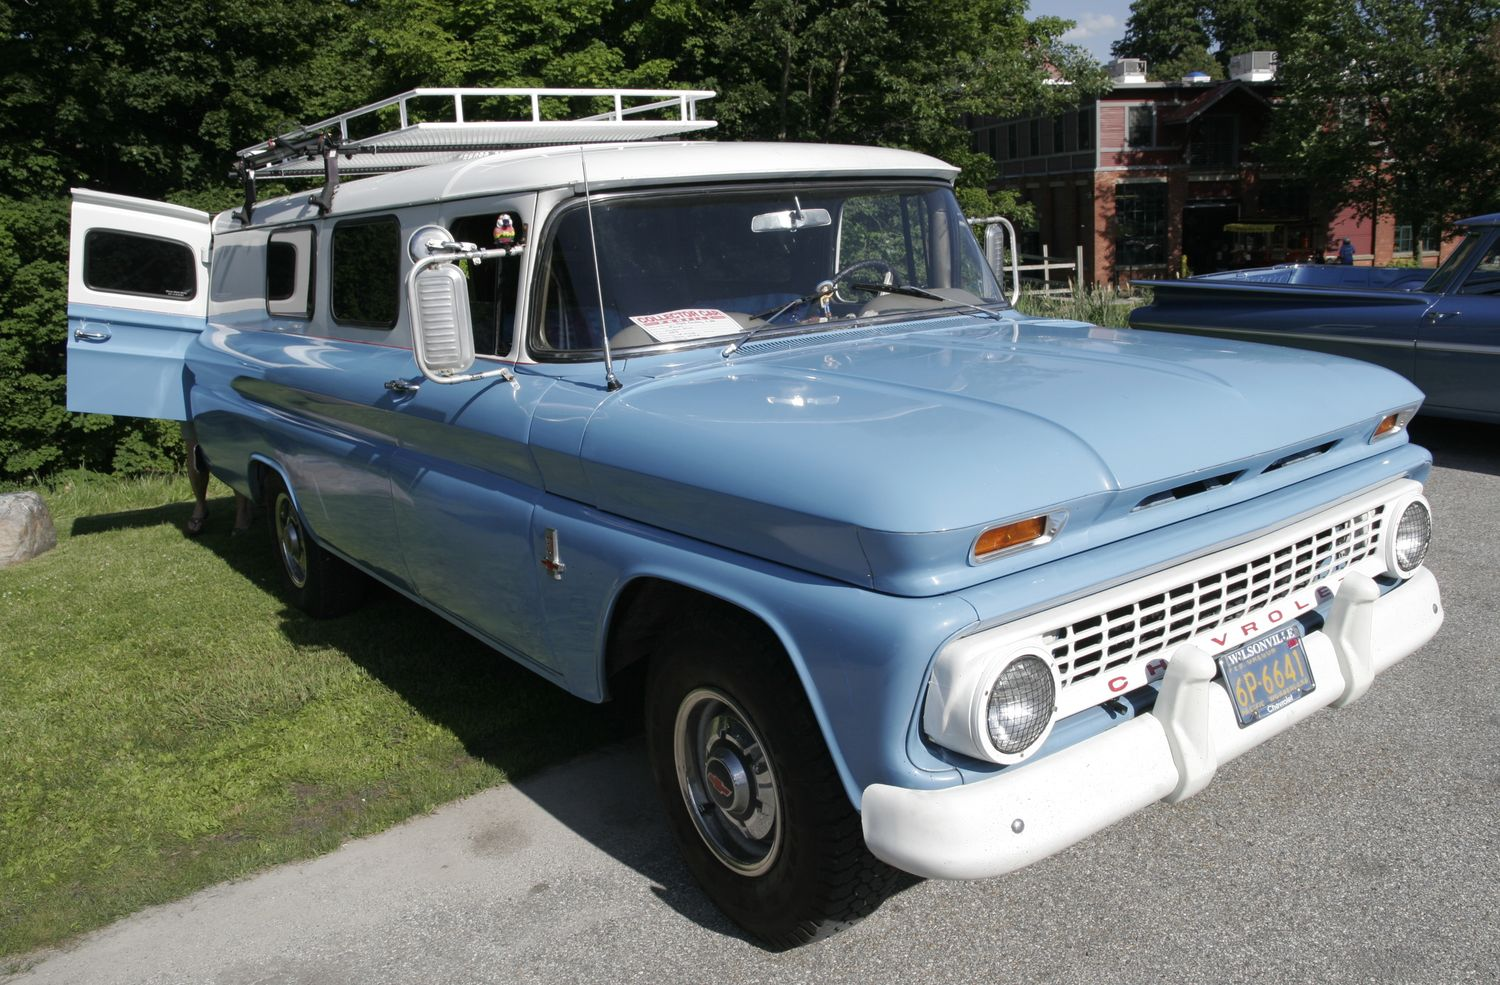 Chevrolet C-30 | Hemmings Blog: Classic and collectible cars and parts